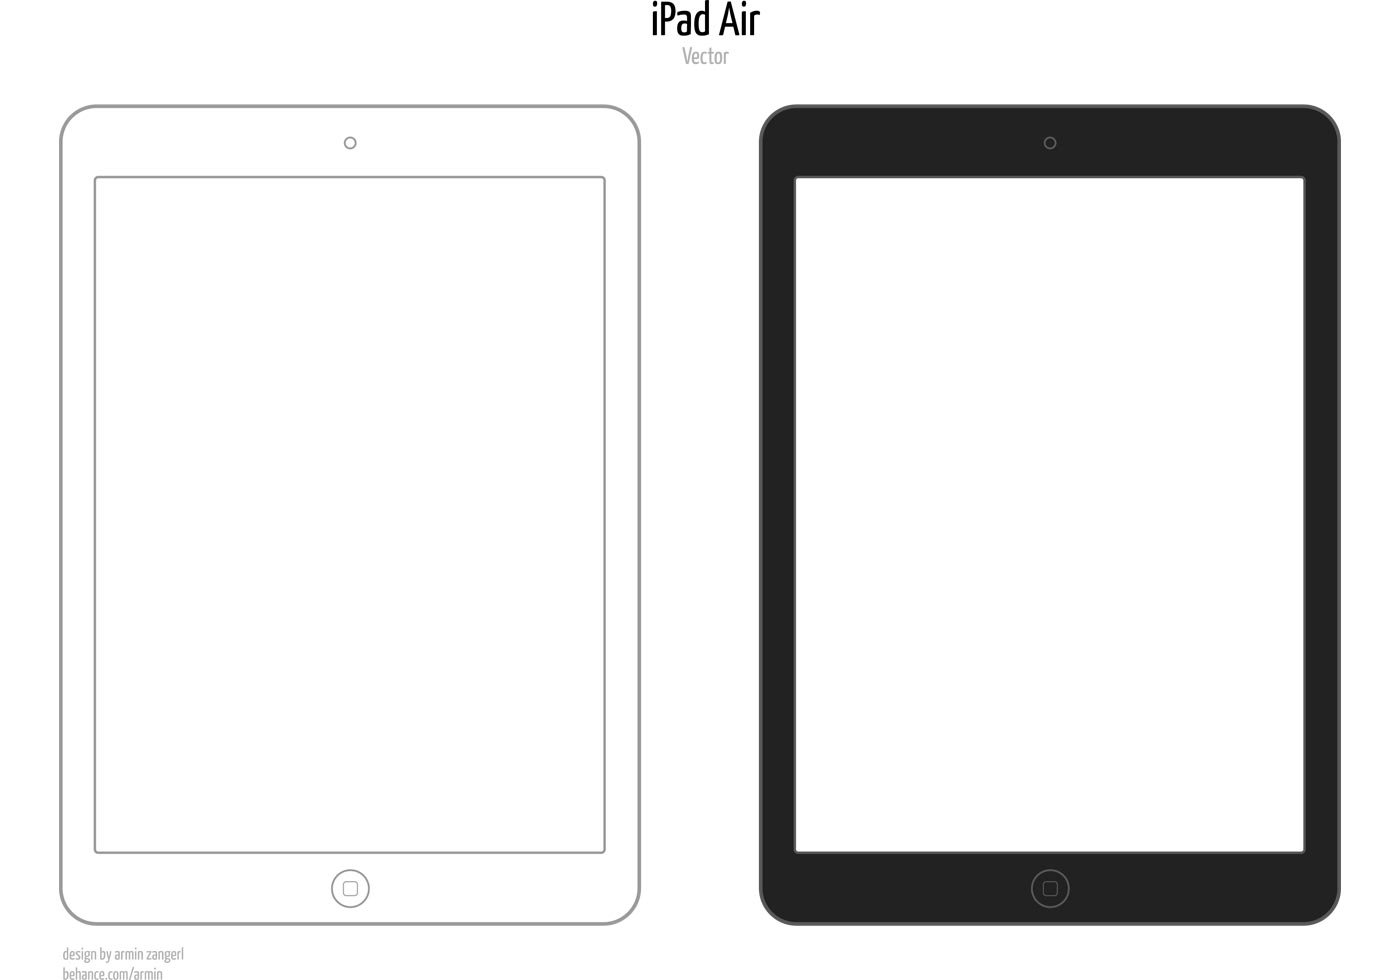 Minimalistic iPad Air Vector Mockup | Free Vector Art at ...